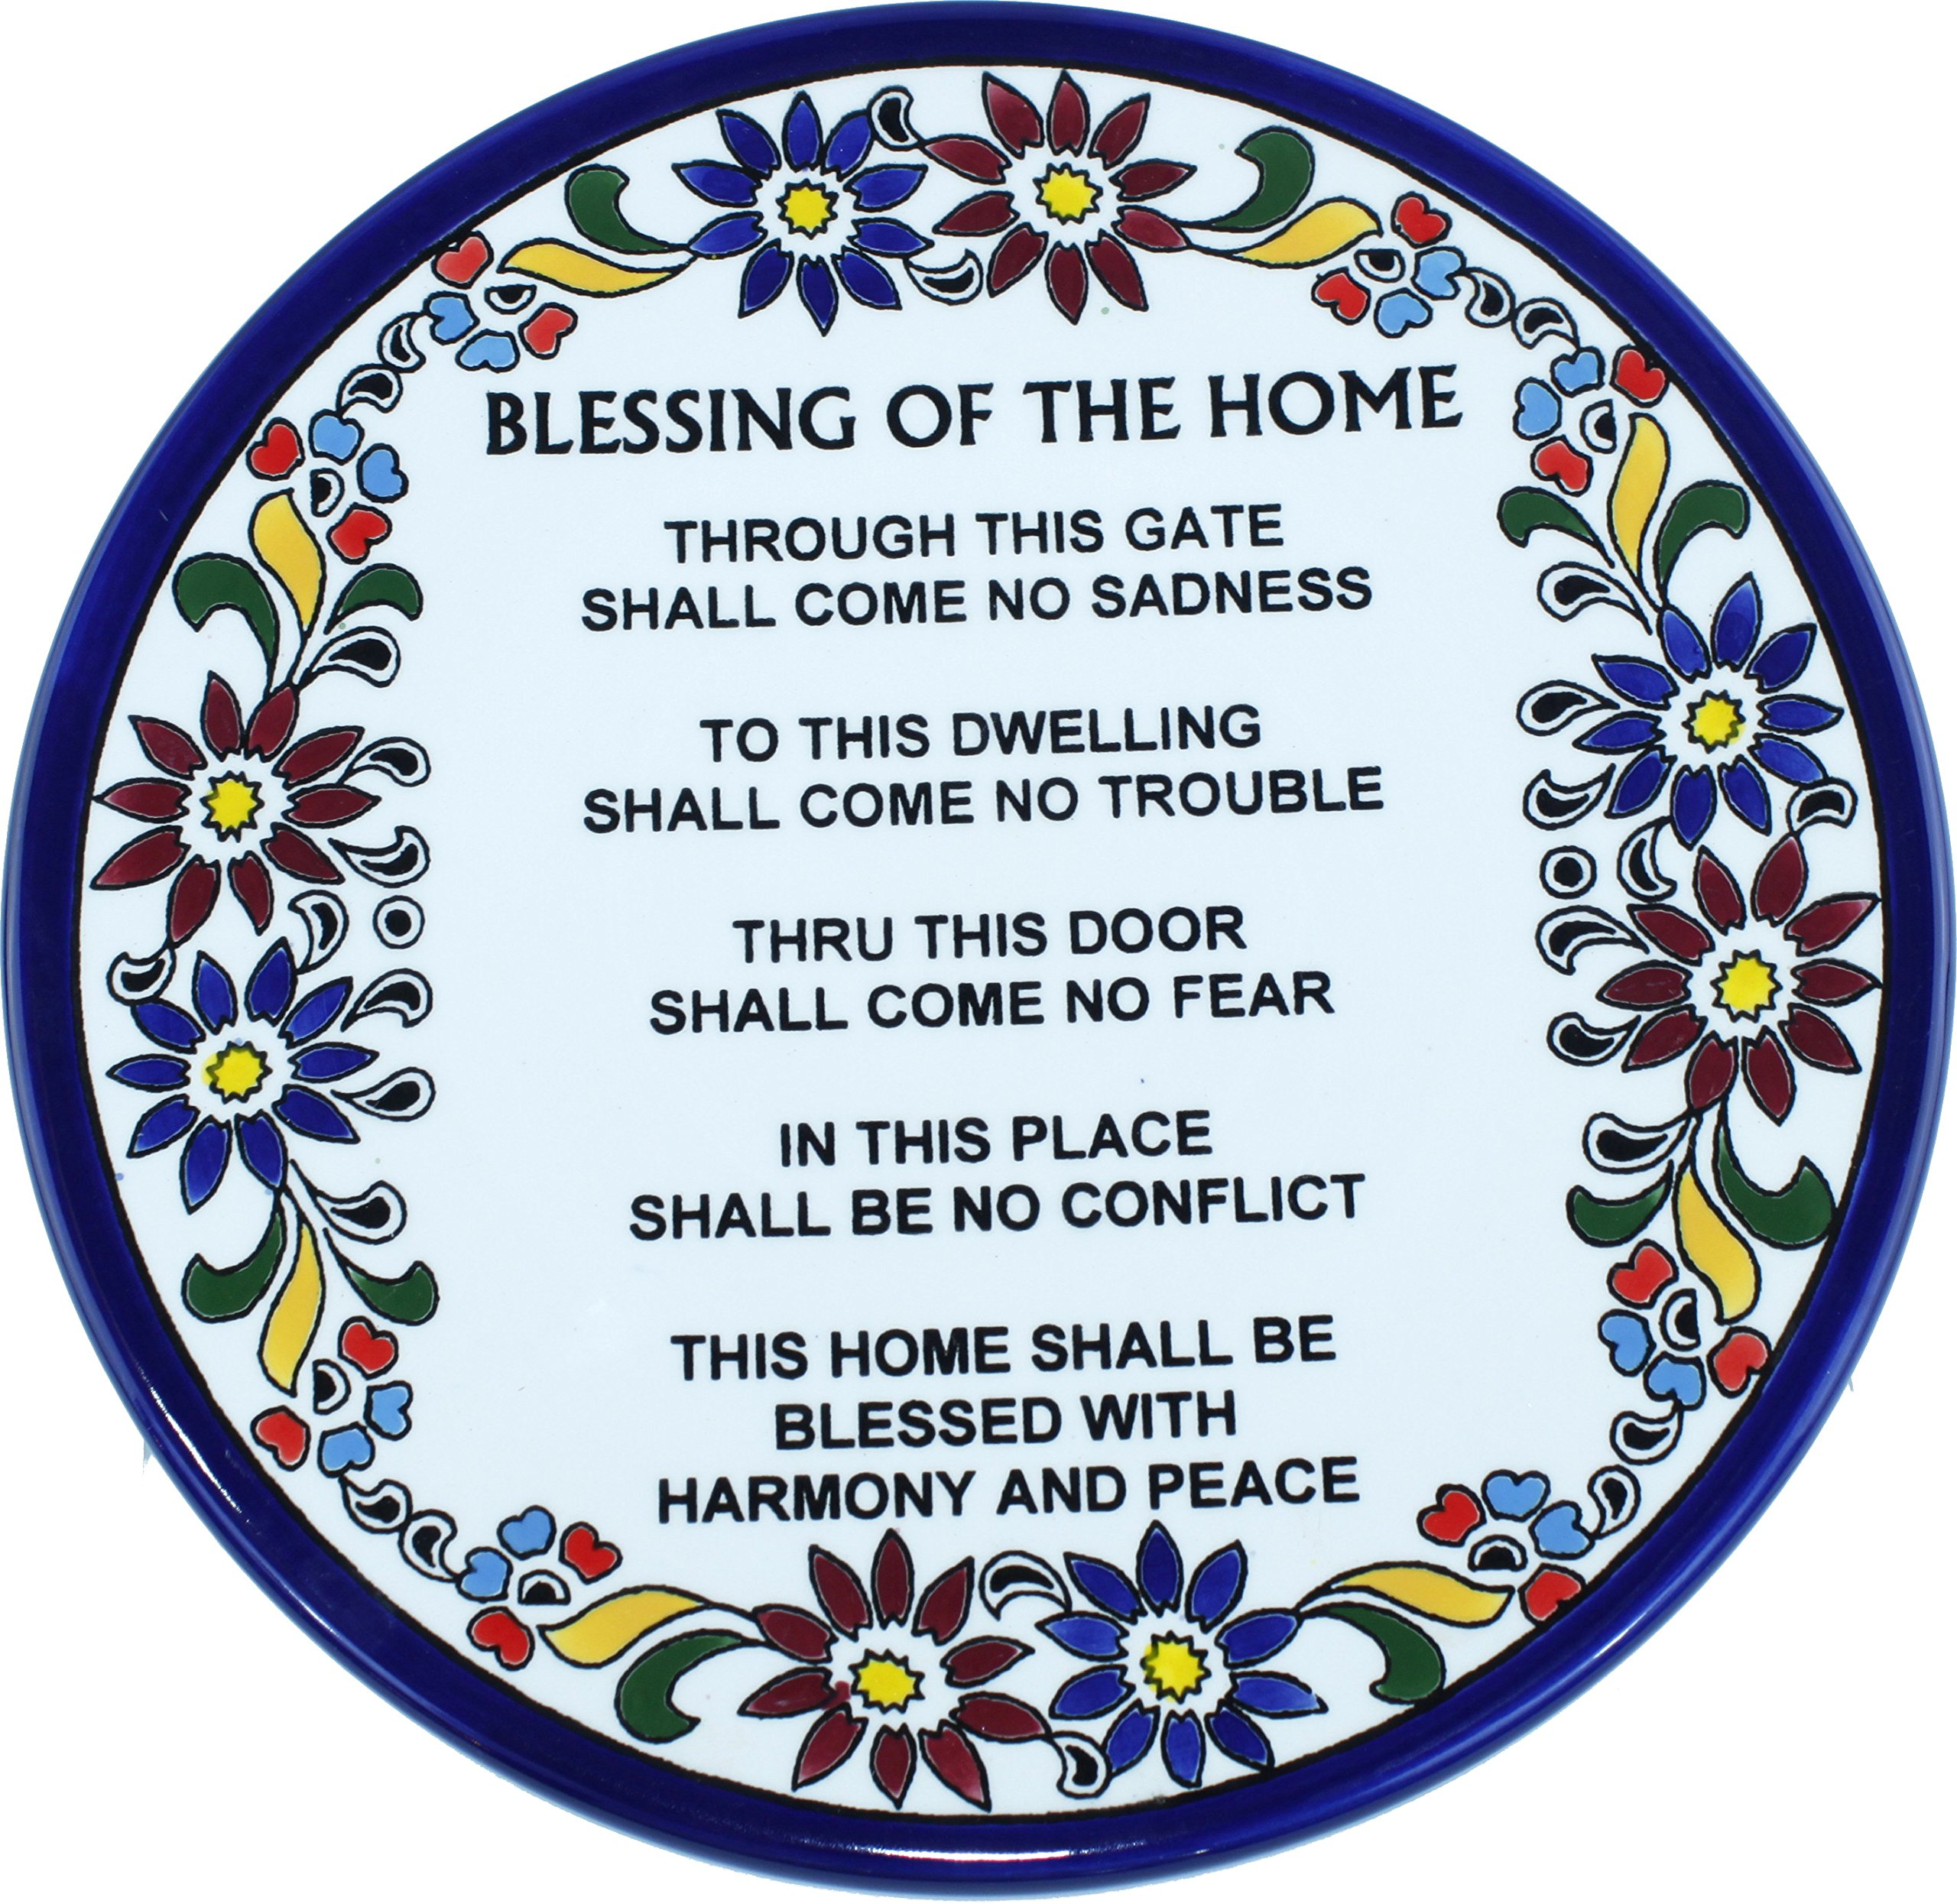 Jewish Prayer Home Blessing Ceramic Decorative Dinner or Hanging Display Plate - Asfour Outlet Trademark (10.5)